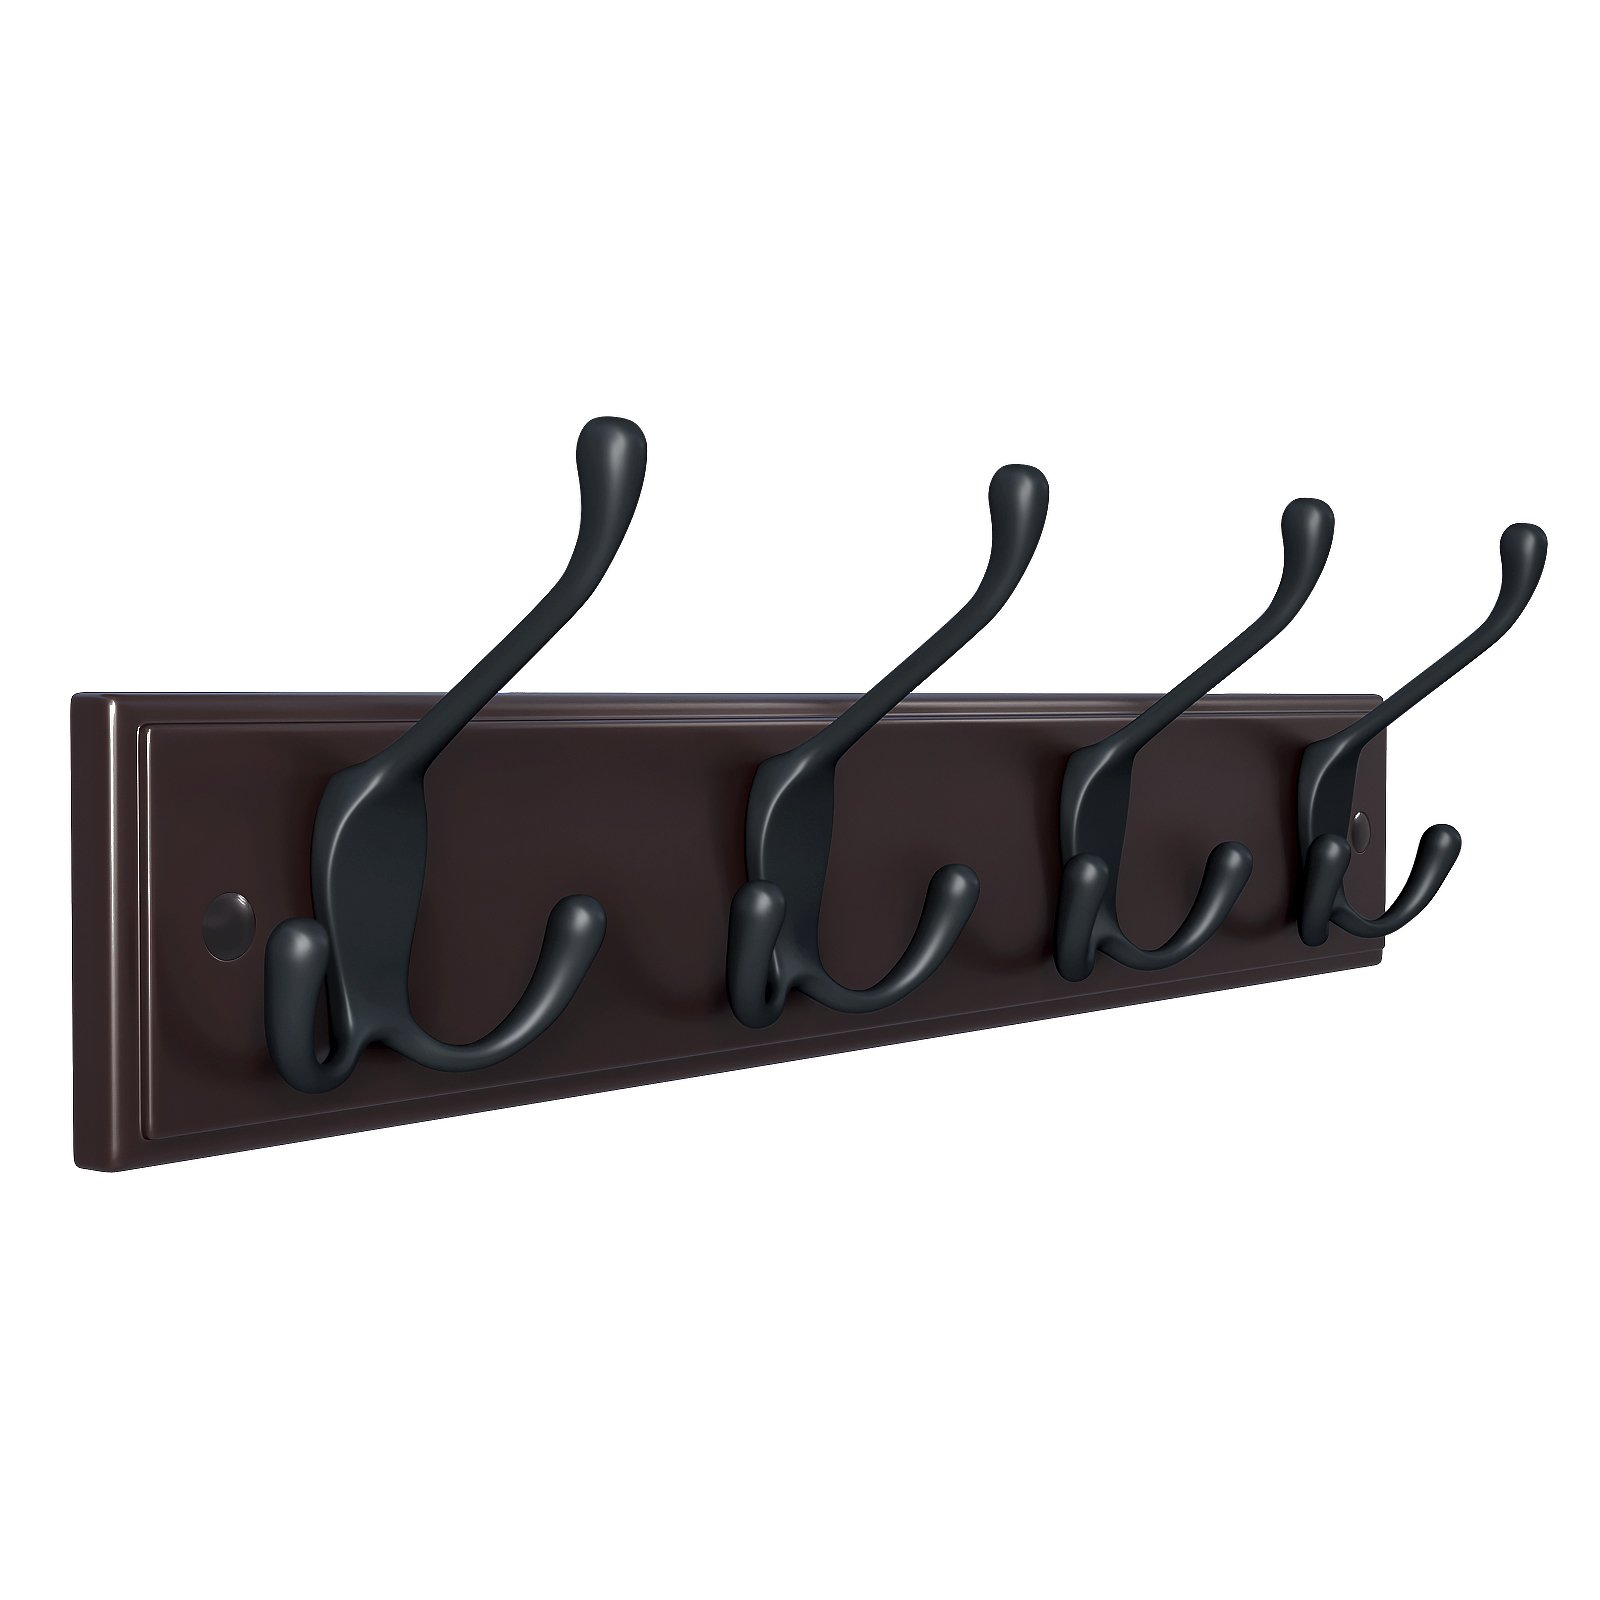 SONGMICS Wall Mounted Coat Rack 16'' Hook Rail Rack with 4 Tri-Hooks for Entryway Bathroom Closet Room, Dark Brown ULHR30Z